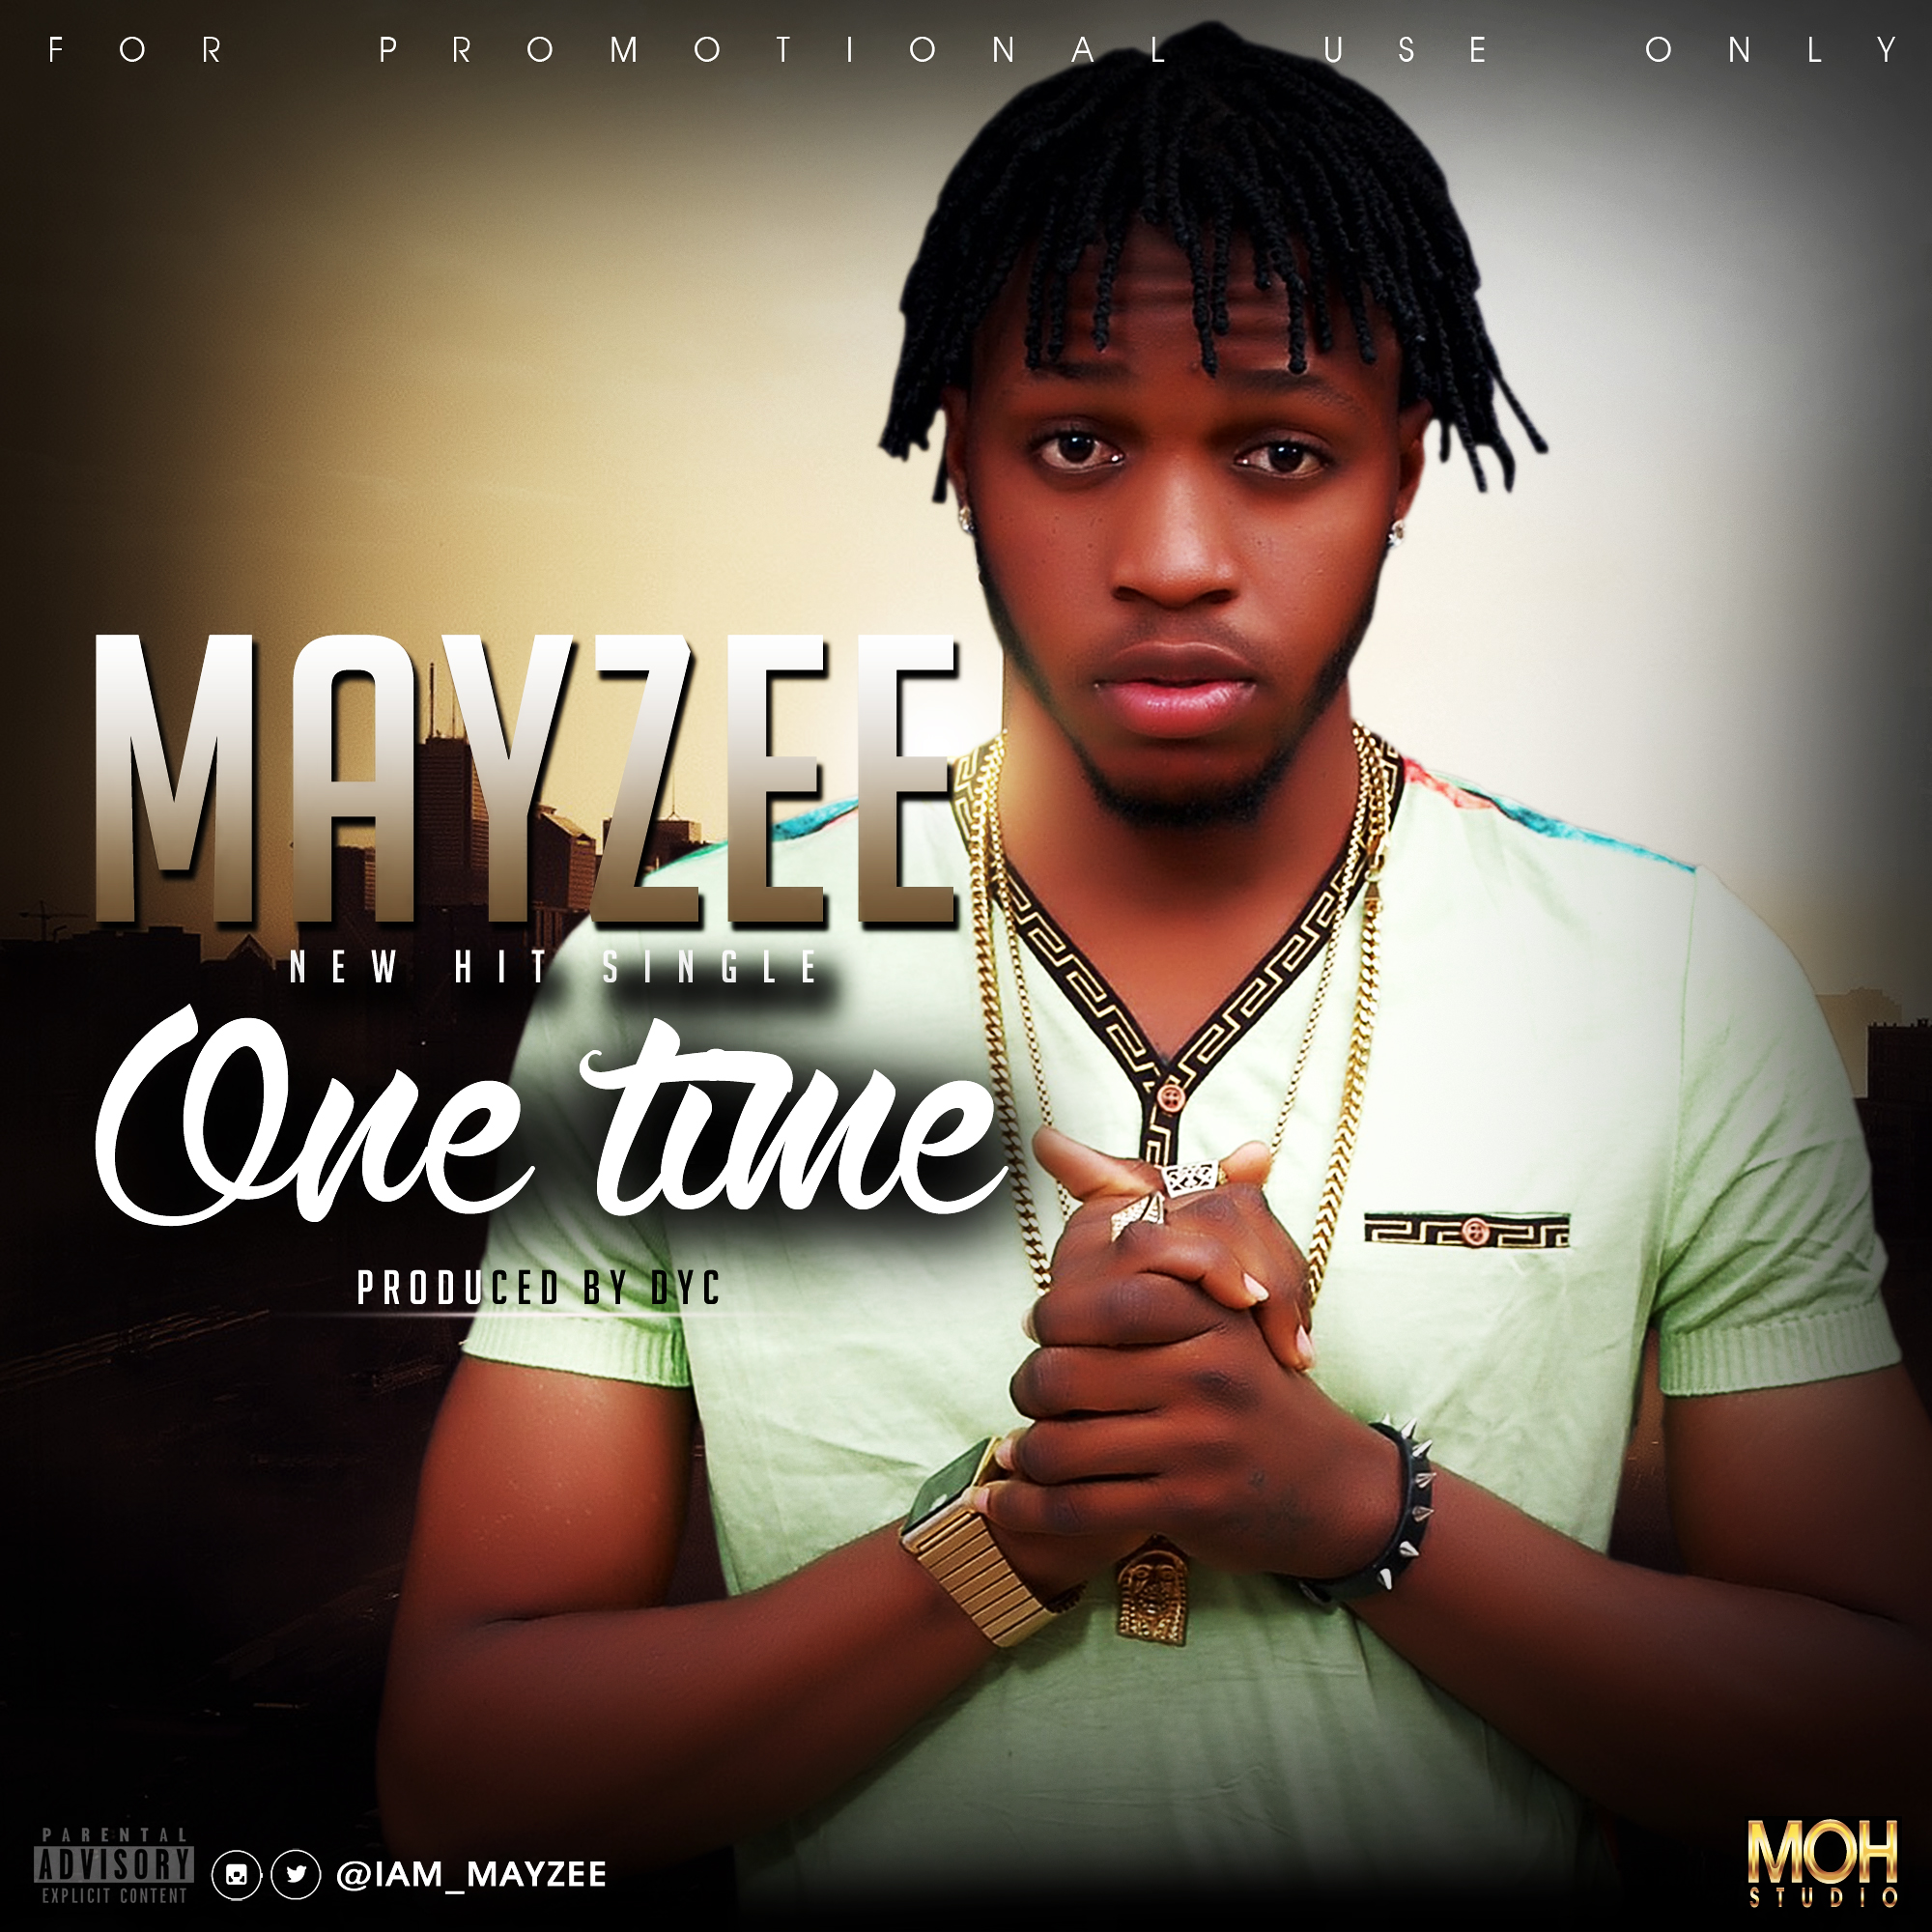 may-zee-one-time